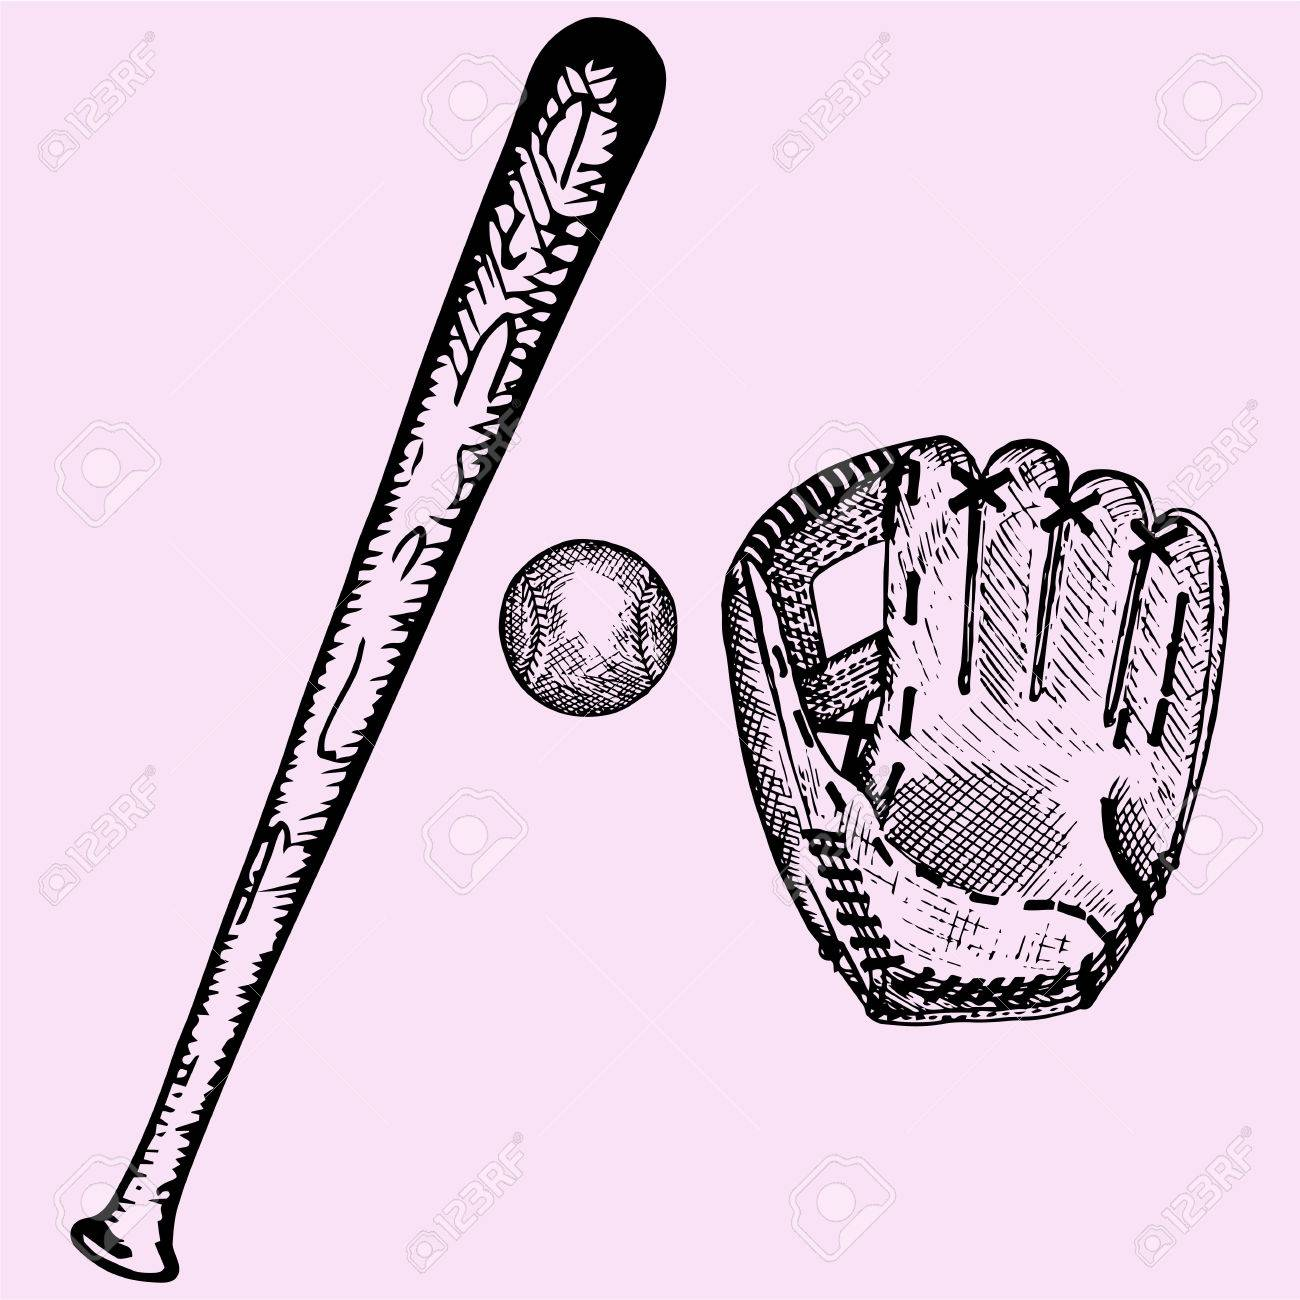 Baseball And Bat Drawing at GetDrawings.com | Free for personal use ...